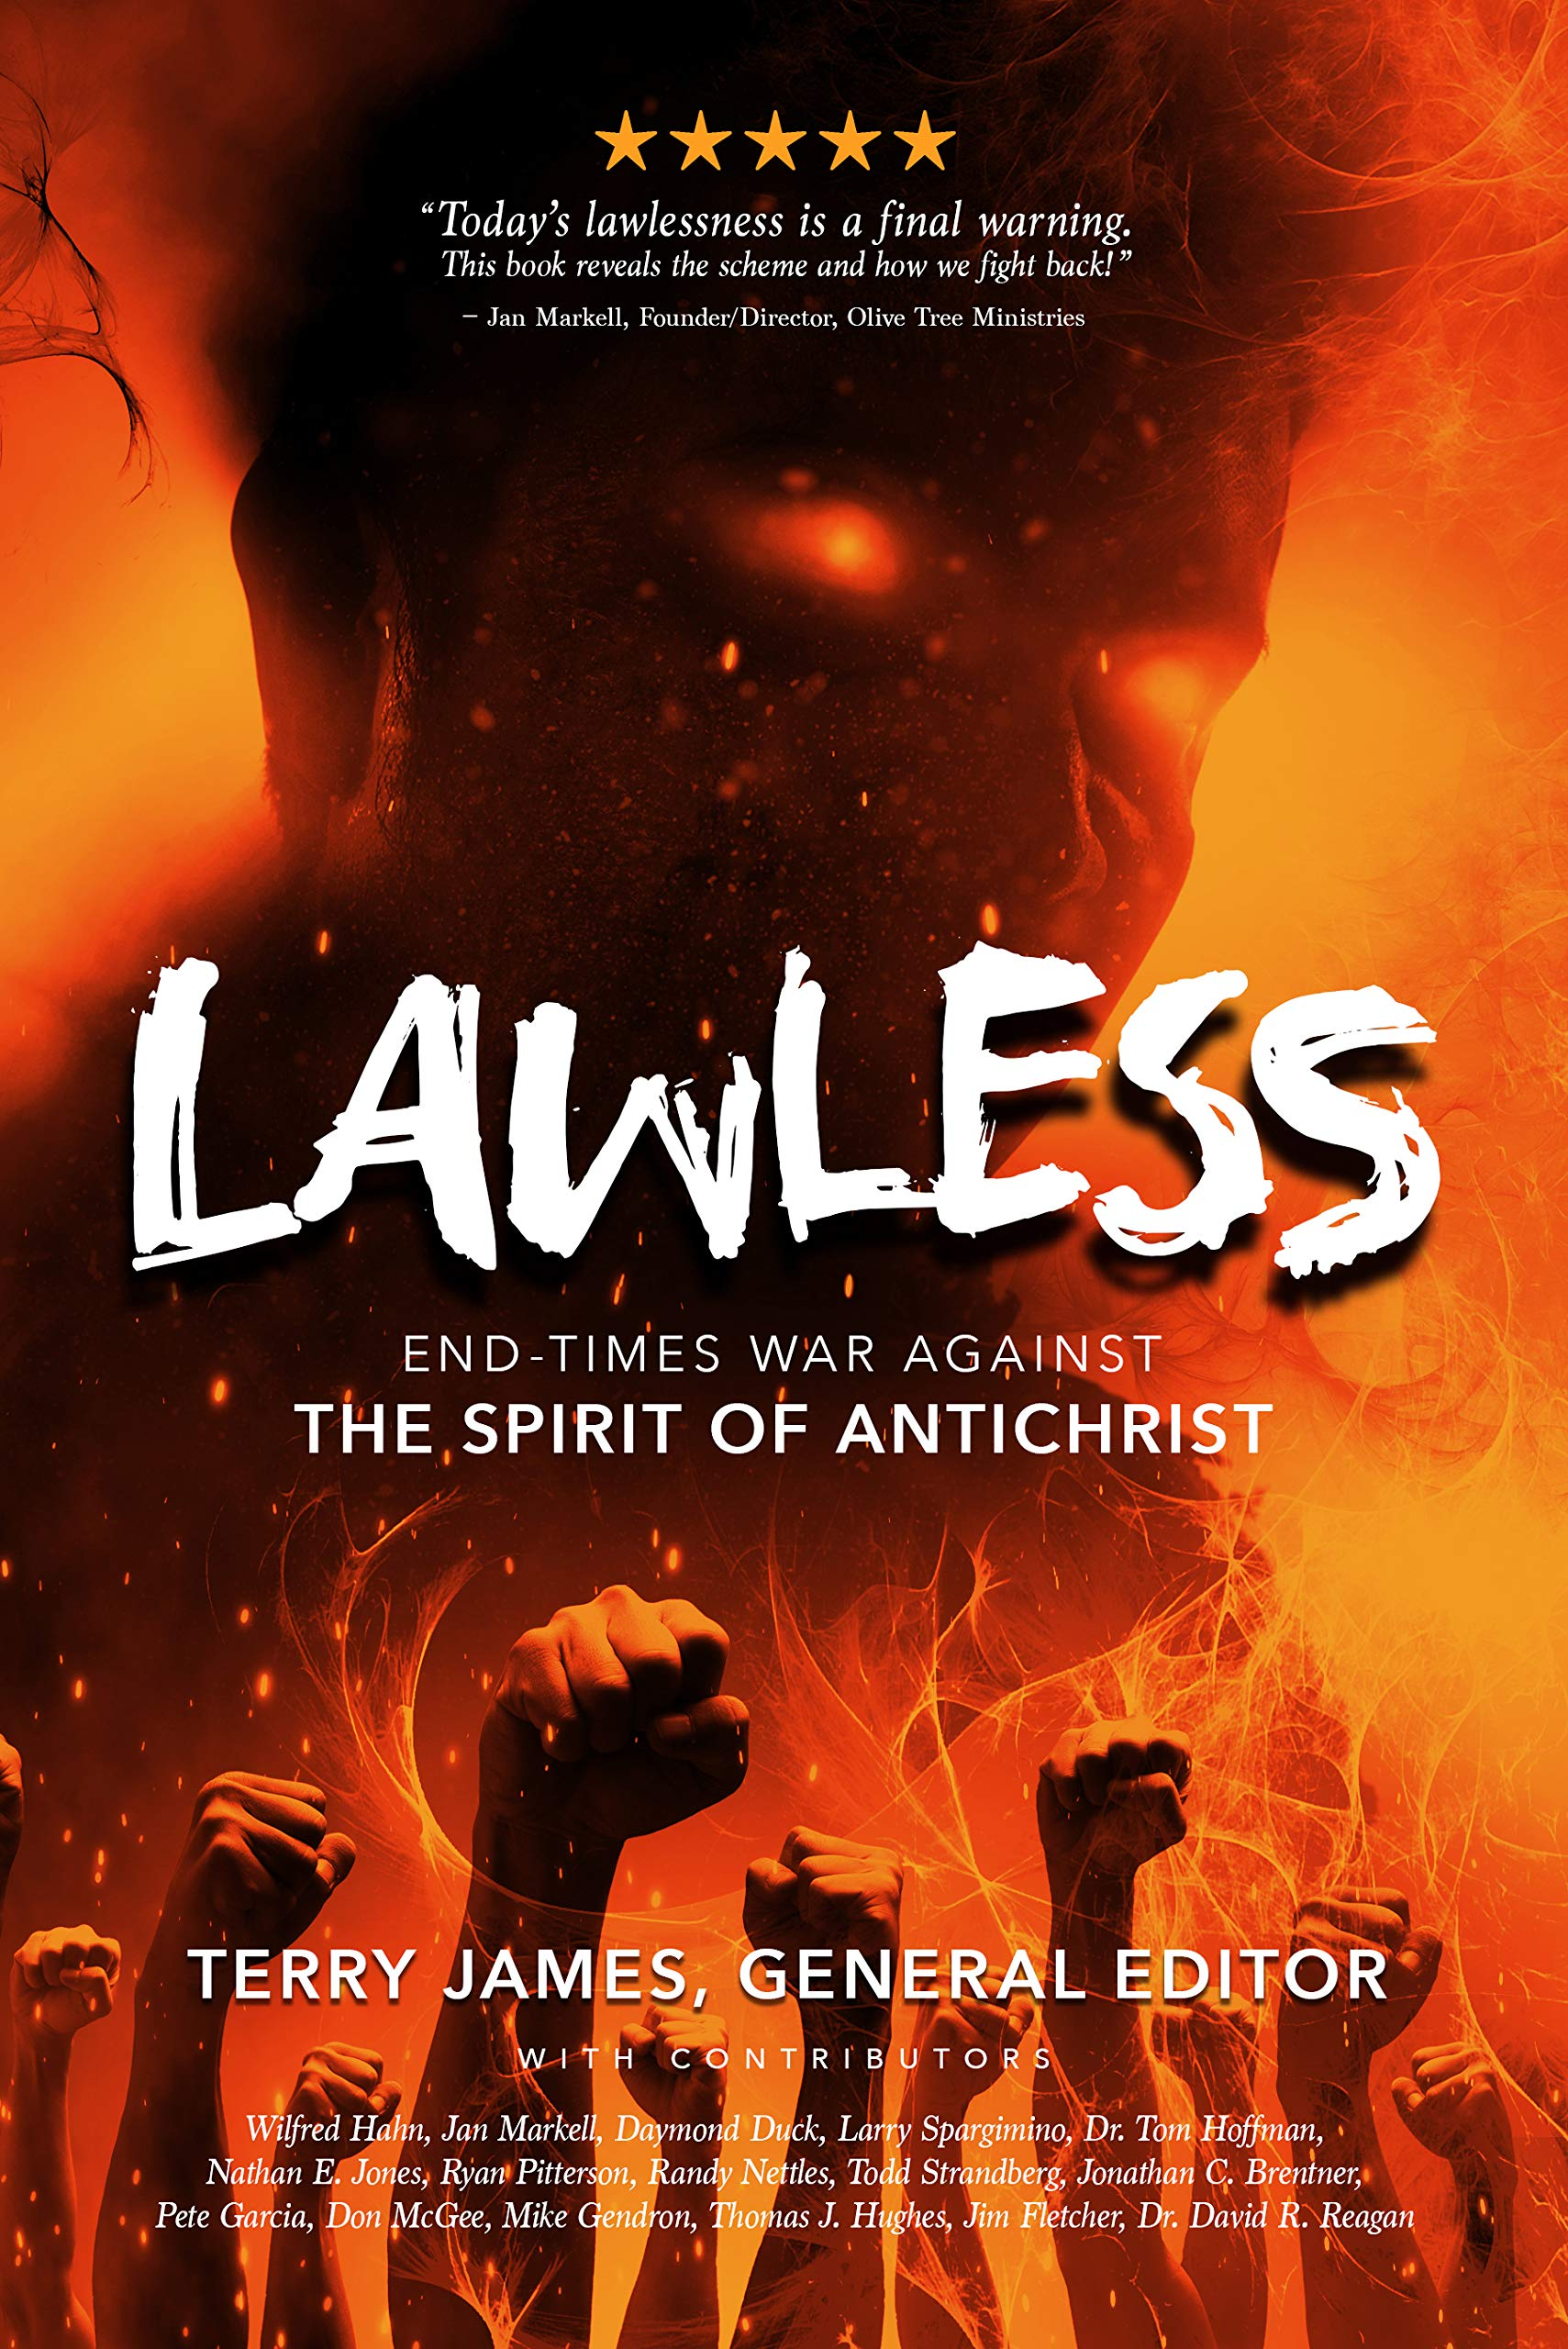 LAWLESS:End Times War Against the Spirit of Antichrist